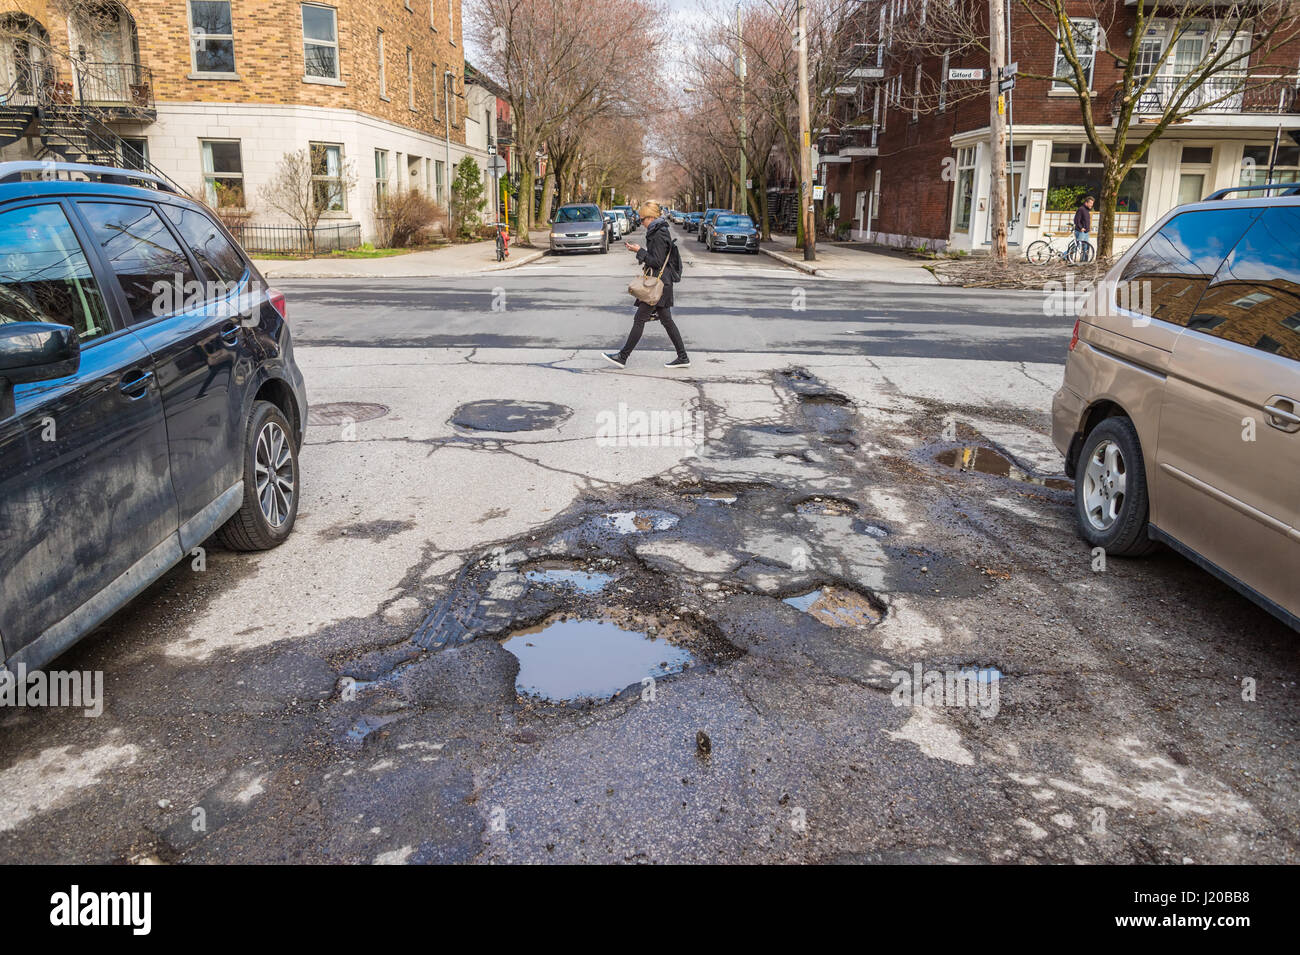 Montreal, Canada - 21 April 2017: Large unrepaired potholes on Boyer street - Stock Image